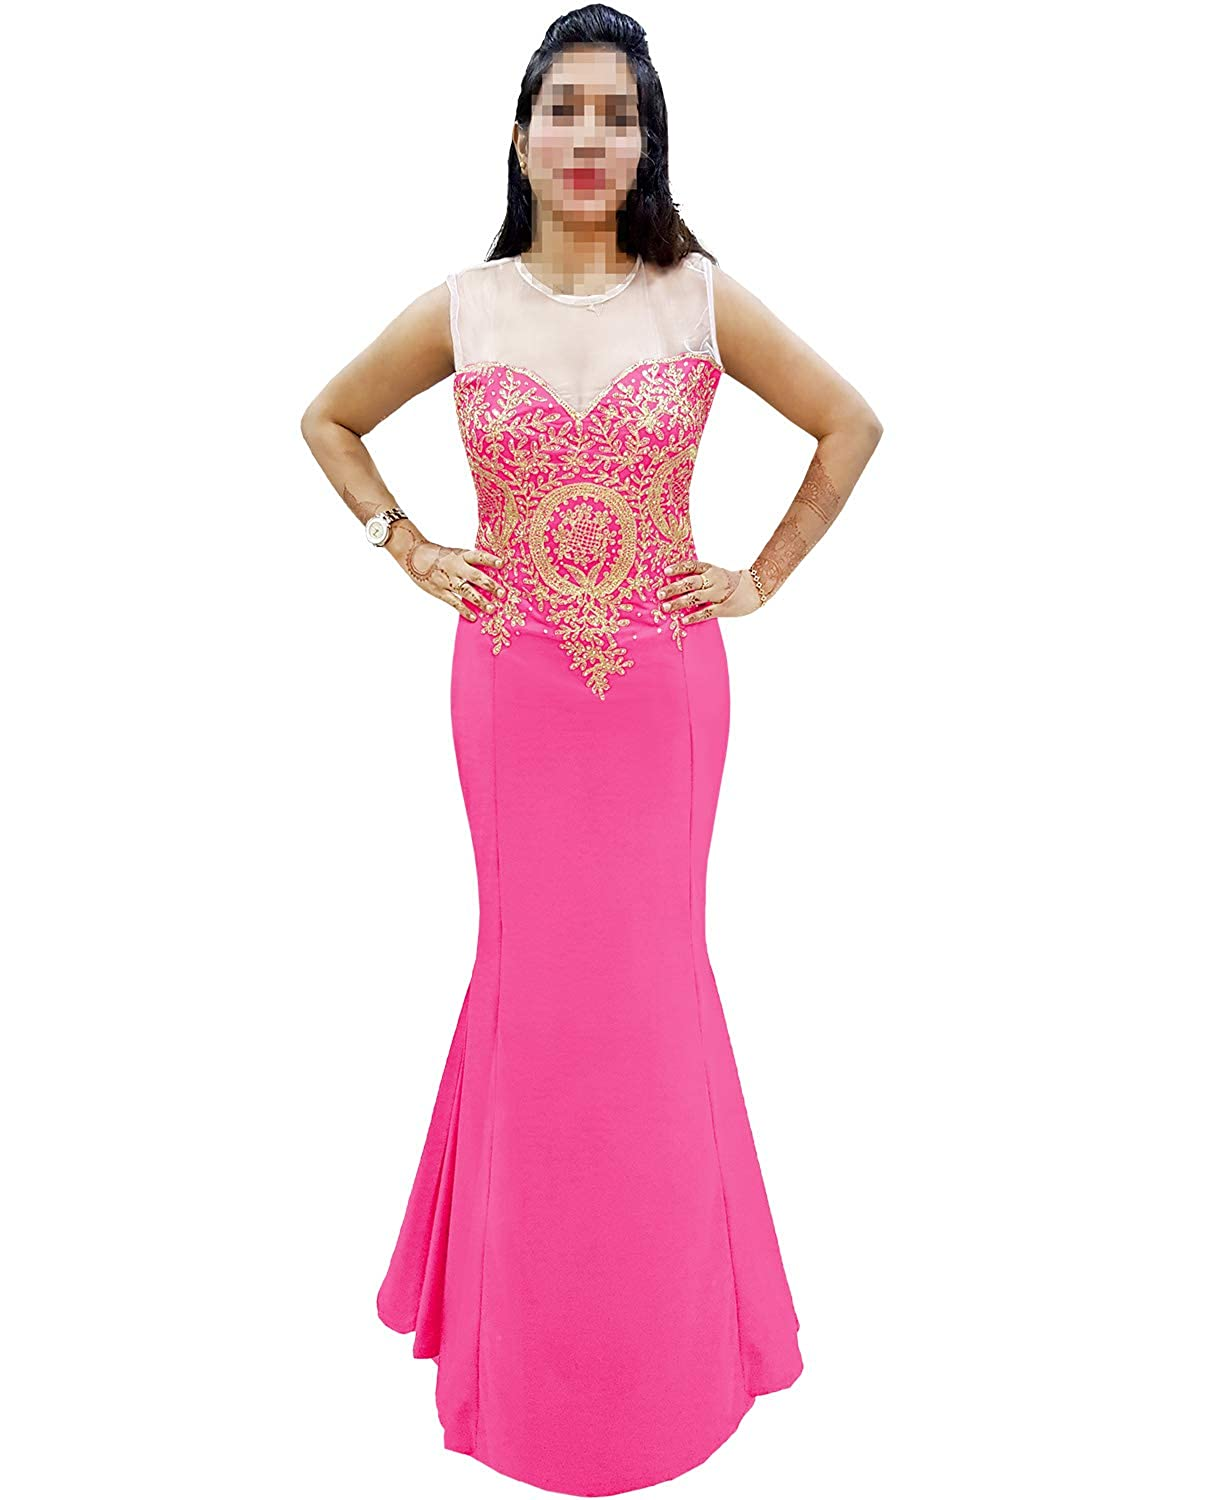 Baby Pink African Boutique Mermaid Evening Dress for Women Formal Embroidery Stone Work Long Prom Dress